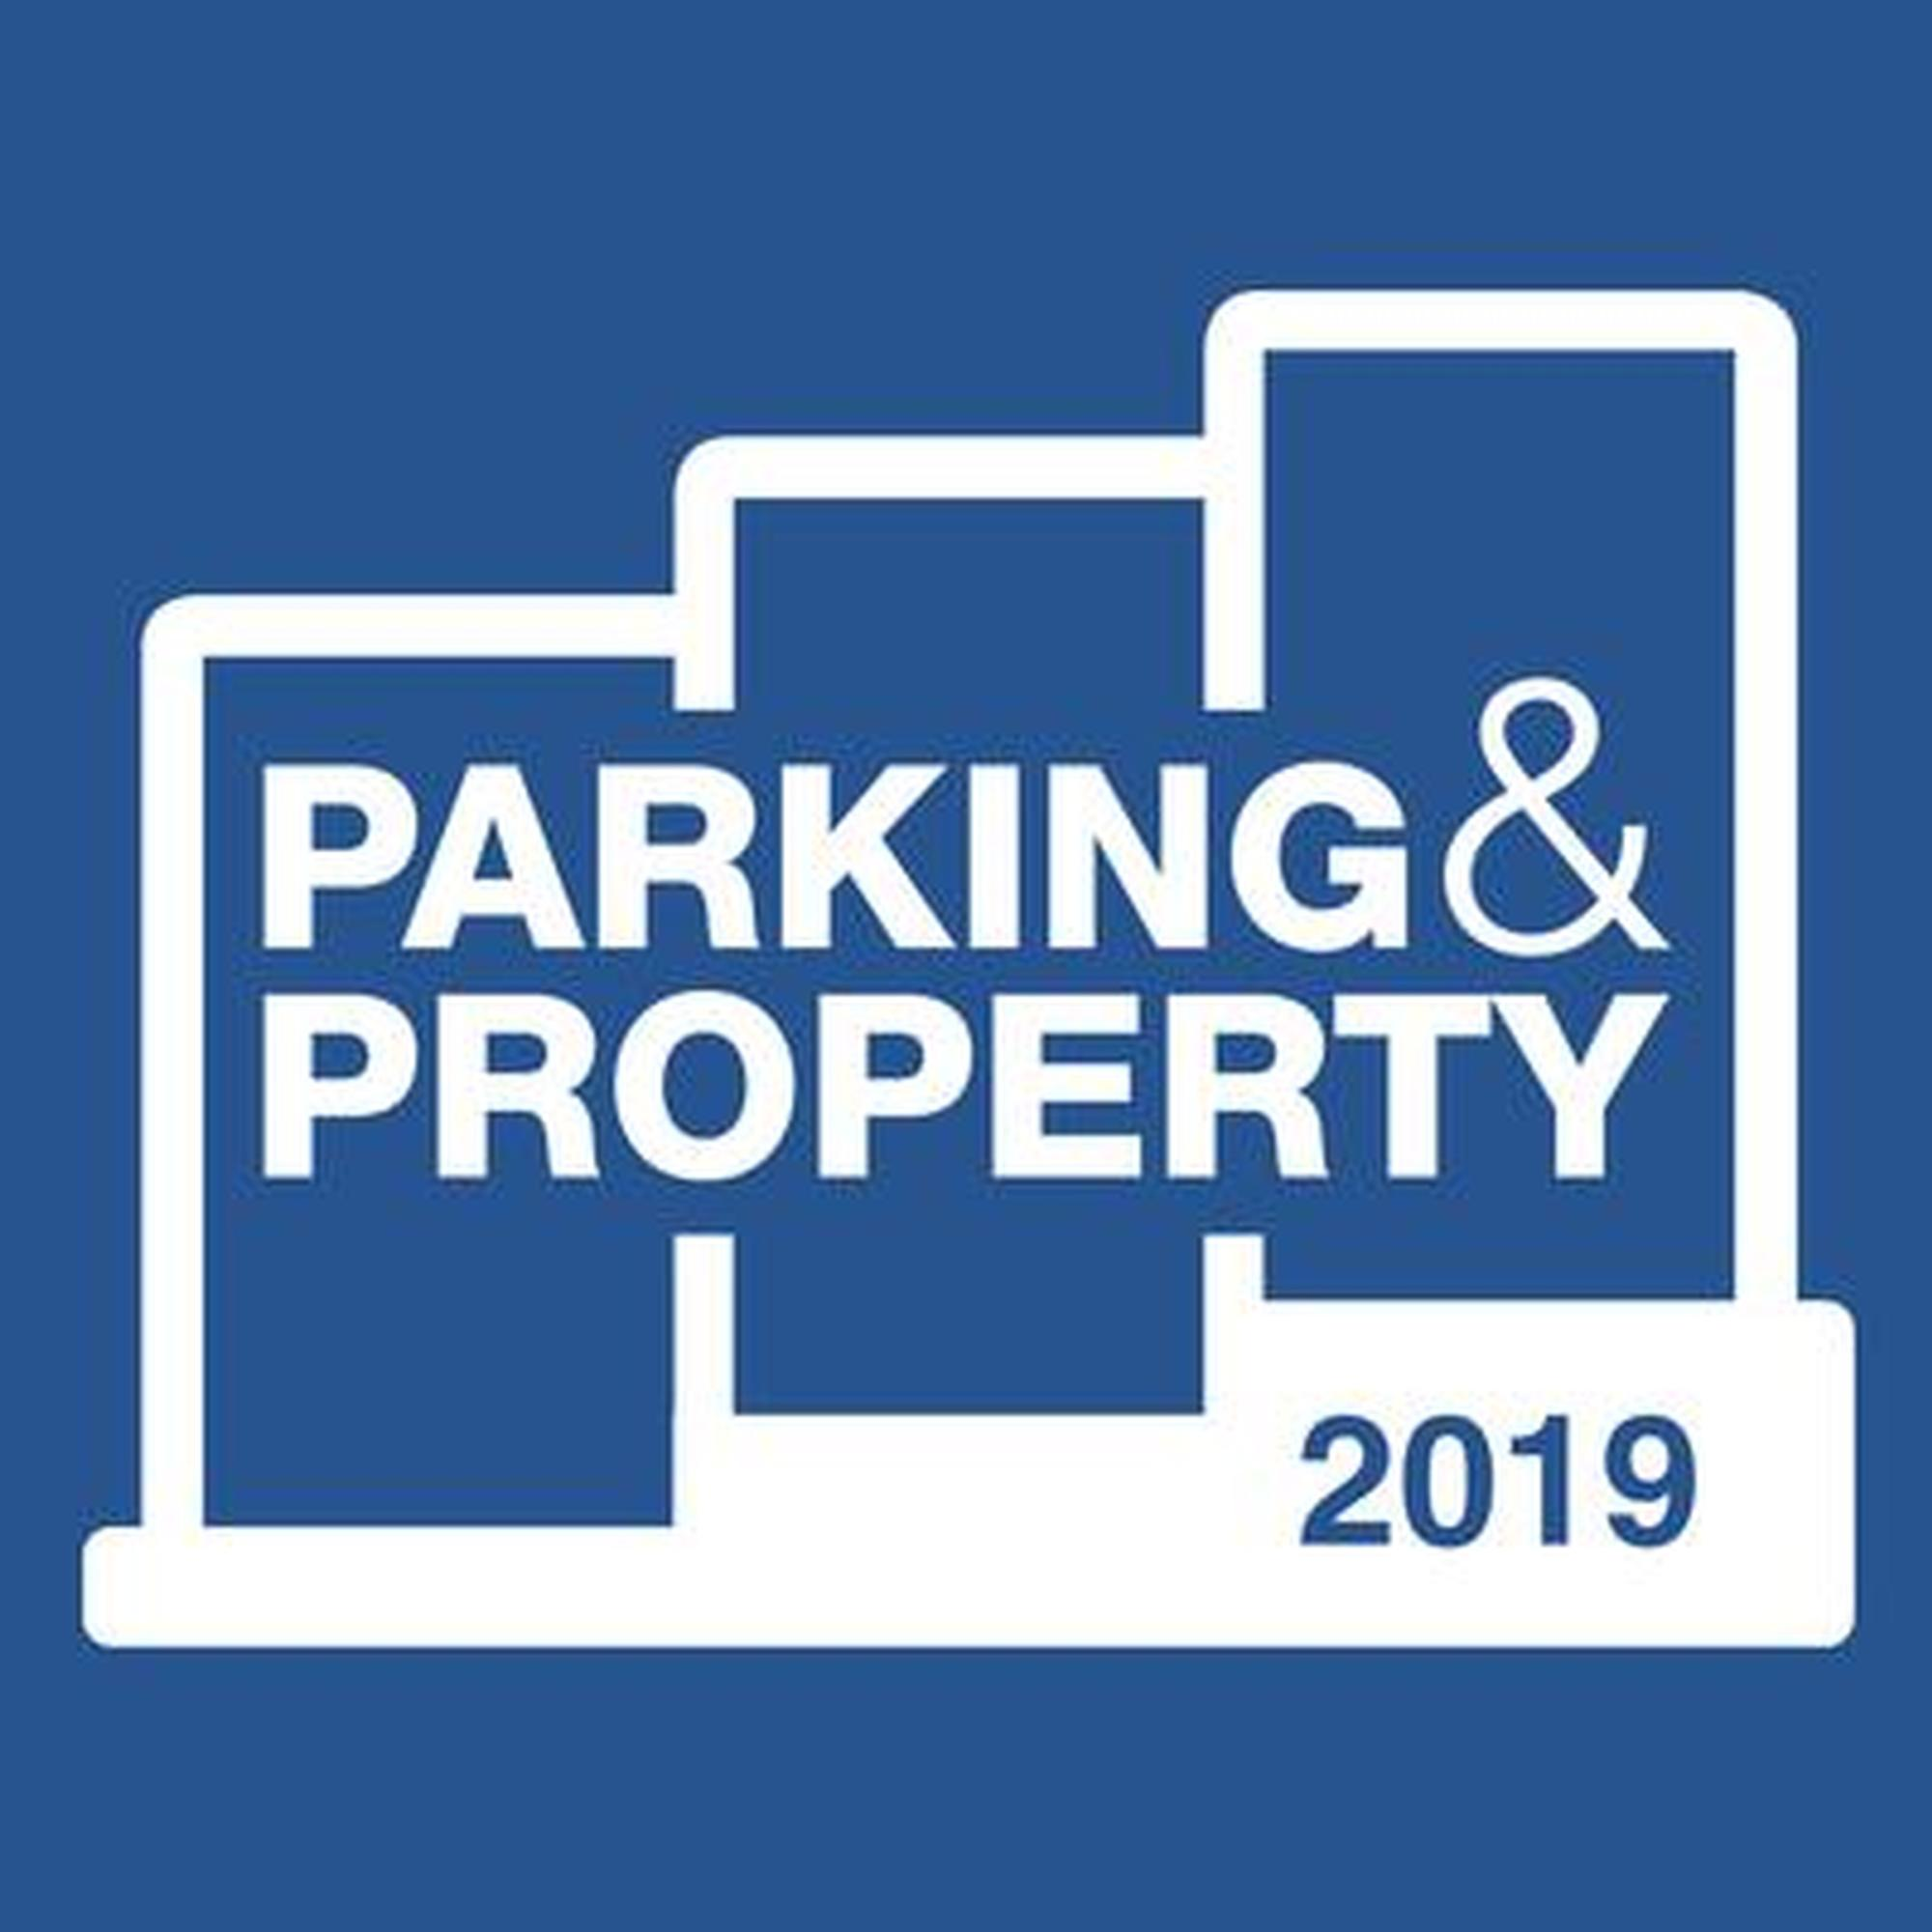 Parking & Property takes place in London on 16 May